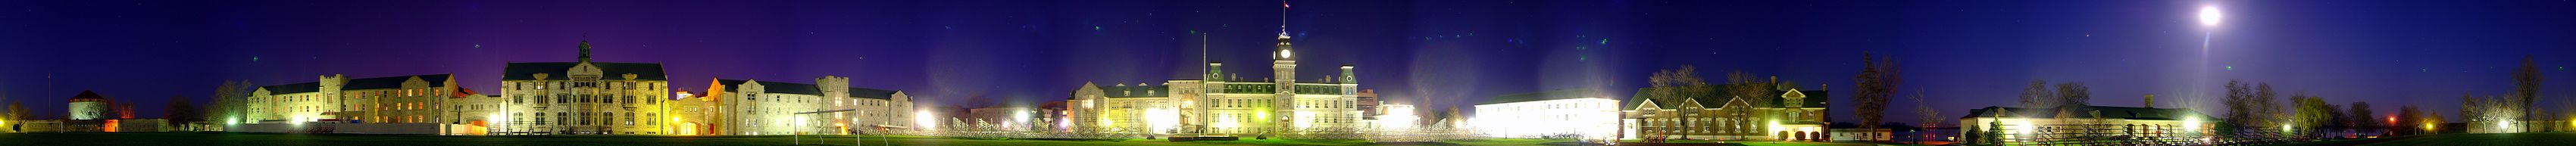 Collège Militaire Royal du Canada - Panorama Central.jpg